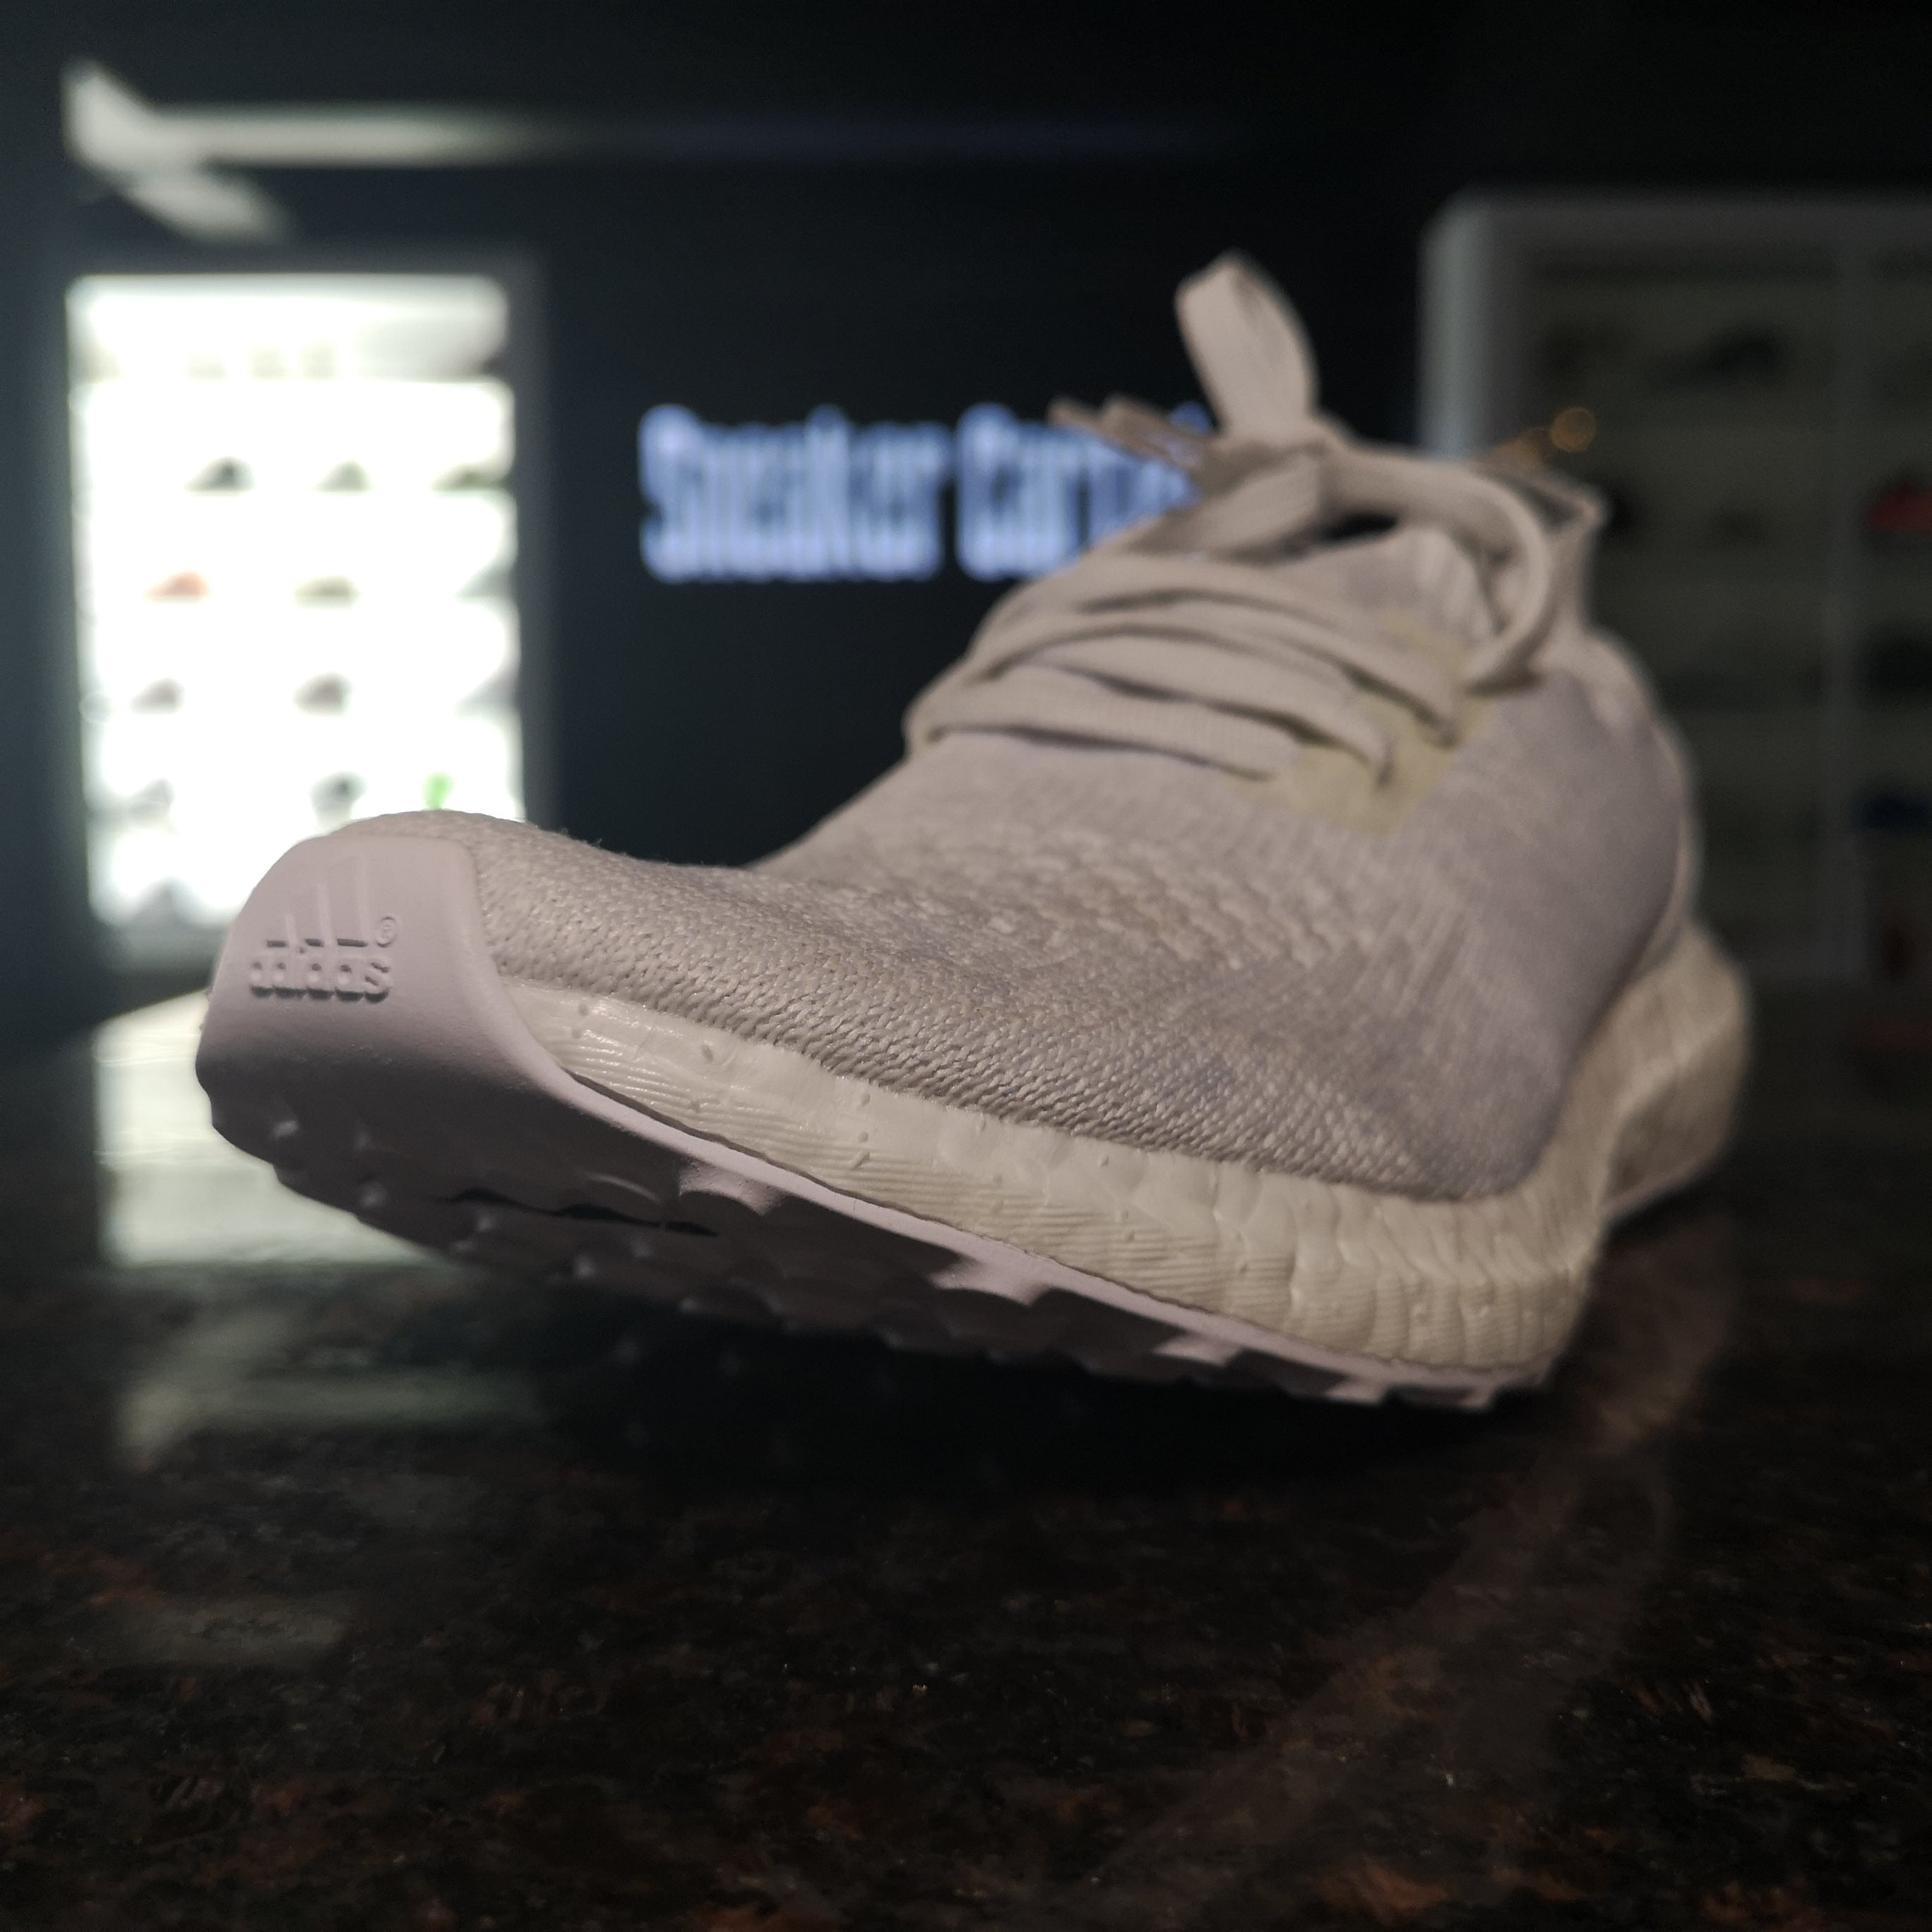 6c7360160d28f Adidas Uncaged Ultra boost Parley – Sneaker Cartel South Africa